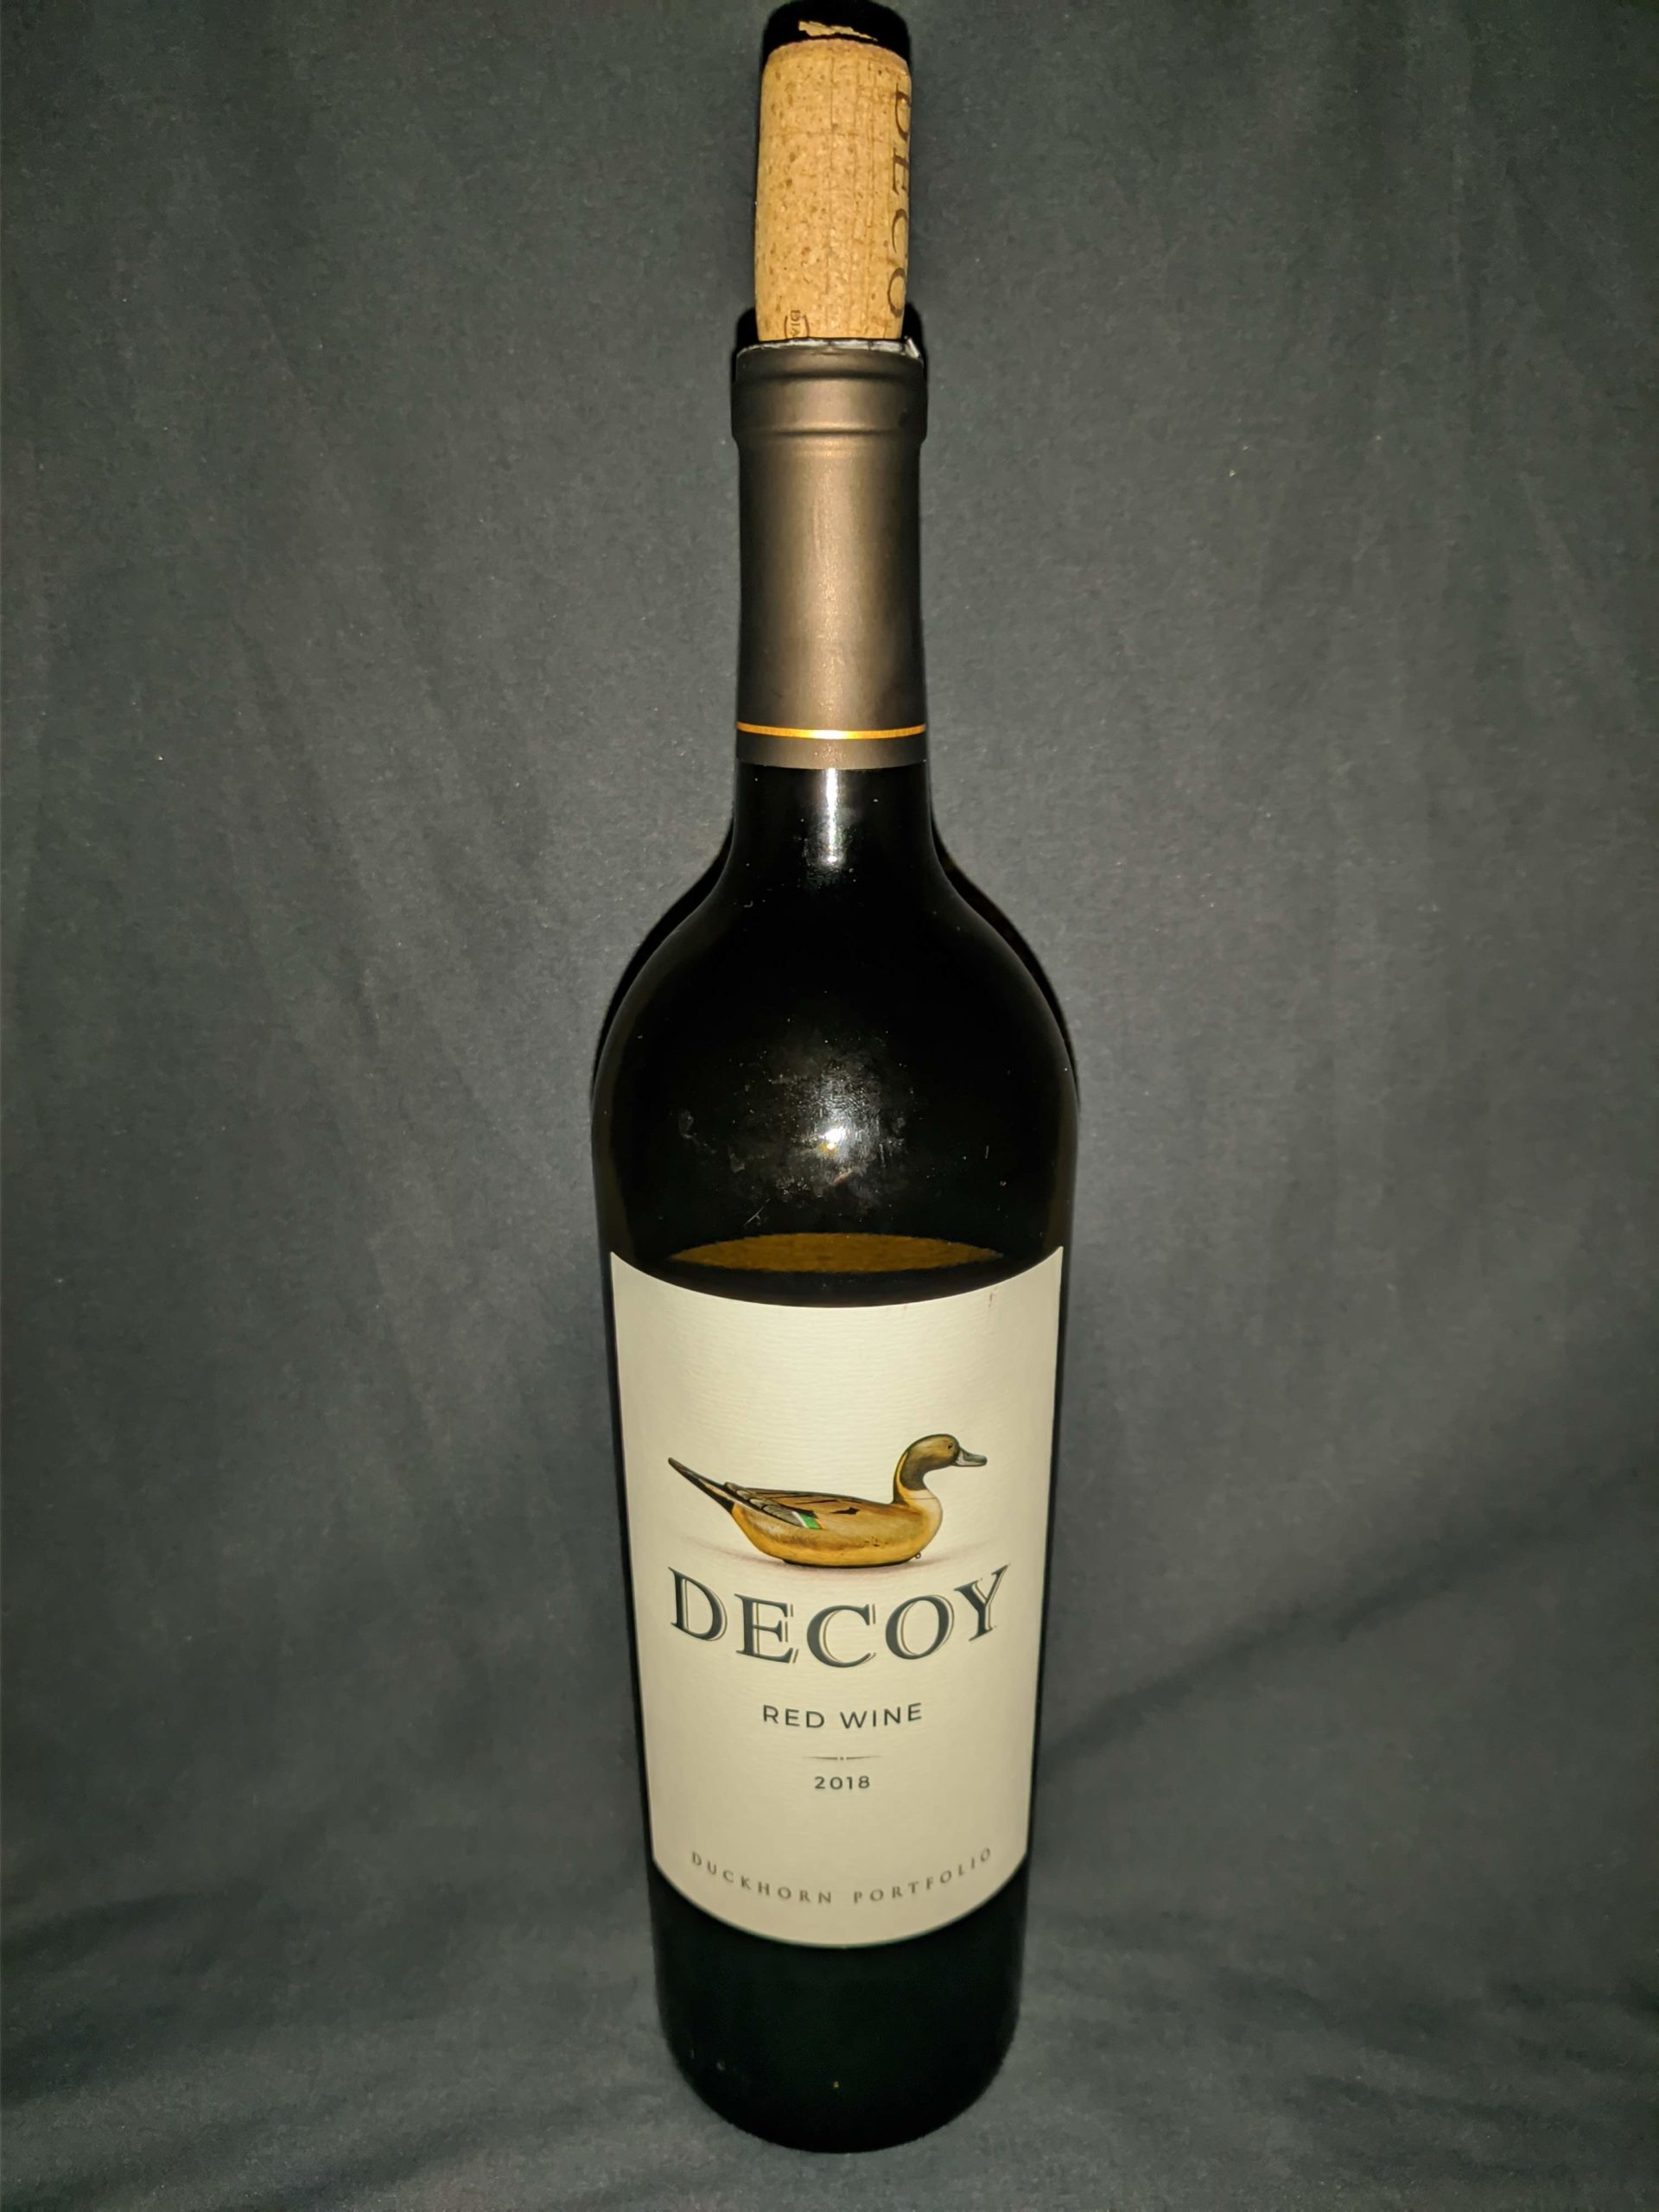 Decoy red wine review